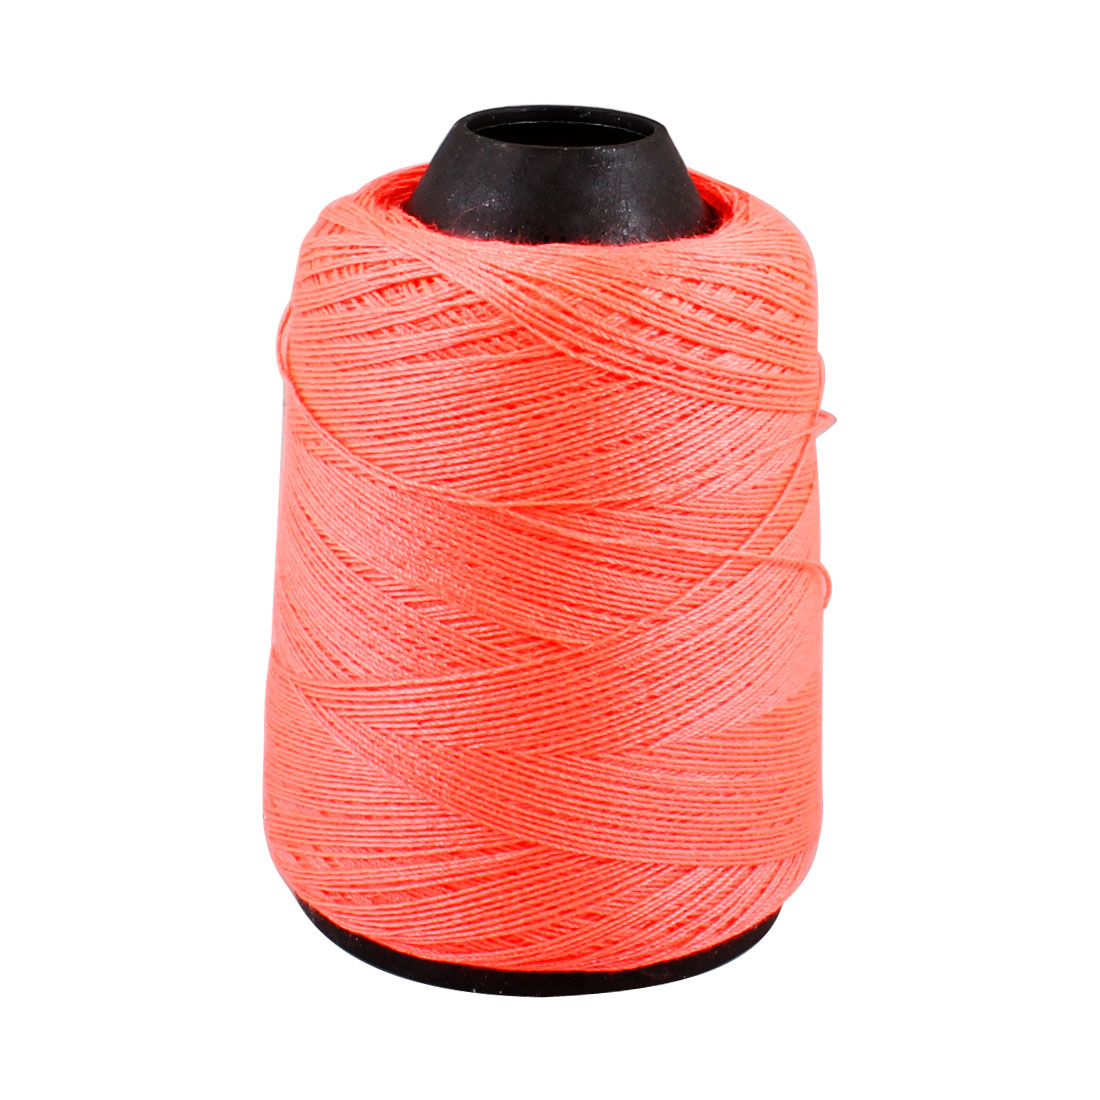 Tailor Hand Embroidery Stitching Sewing Quilting Salmon Pink Thread Spool